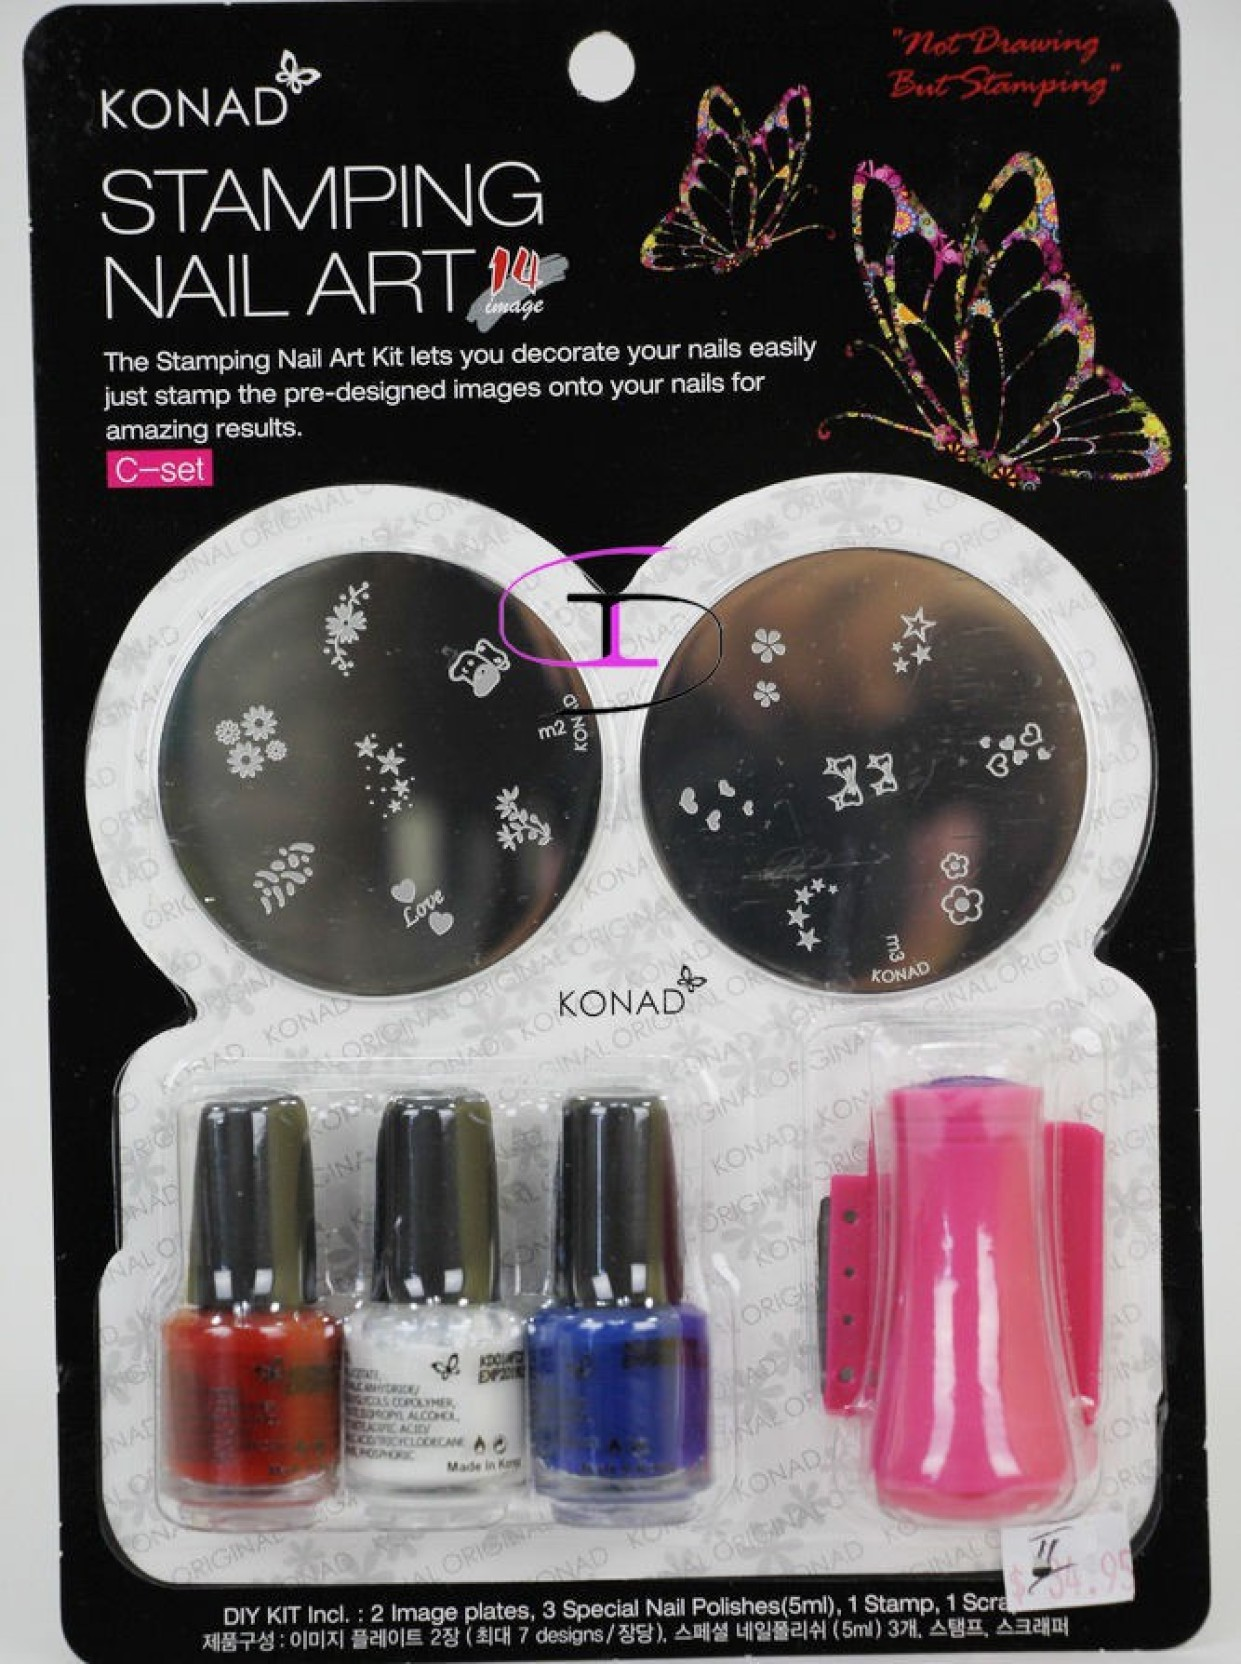 Konad Stamping Nail Art Kit - Set C Price in India - Buy Konad ...